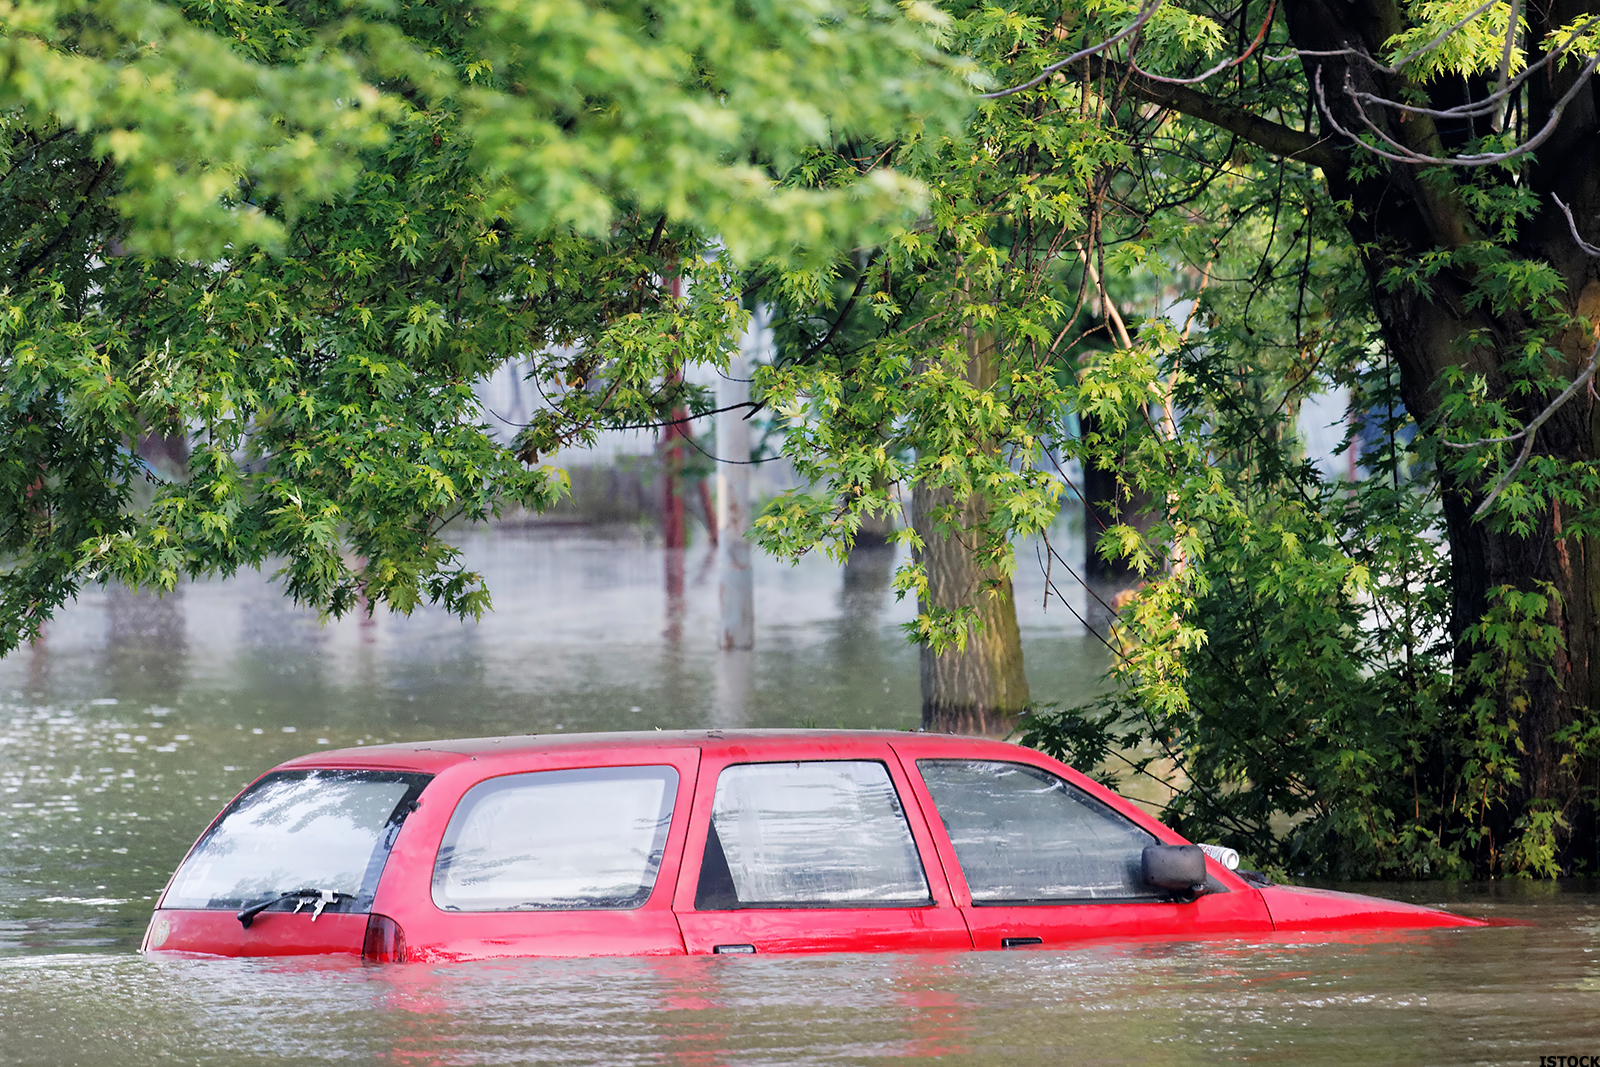 Does car insurance cover flooding : Best car insurance provider